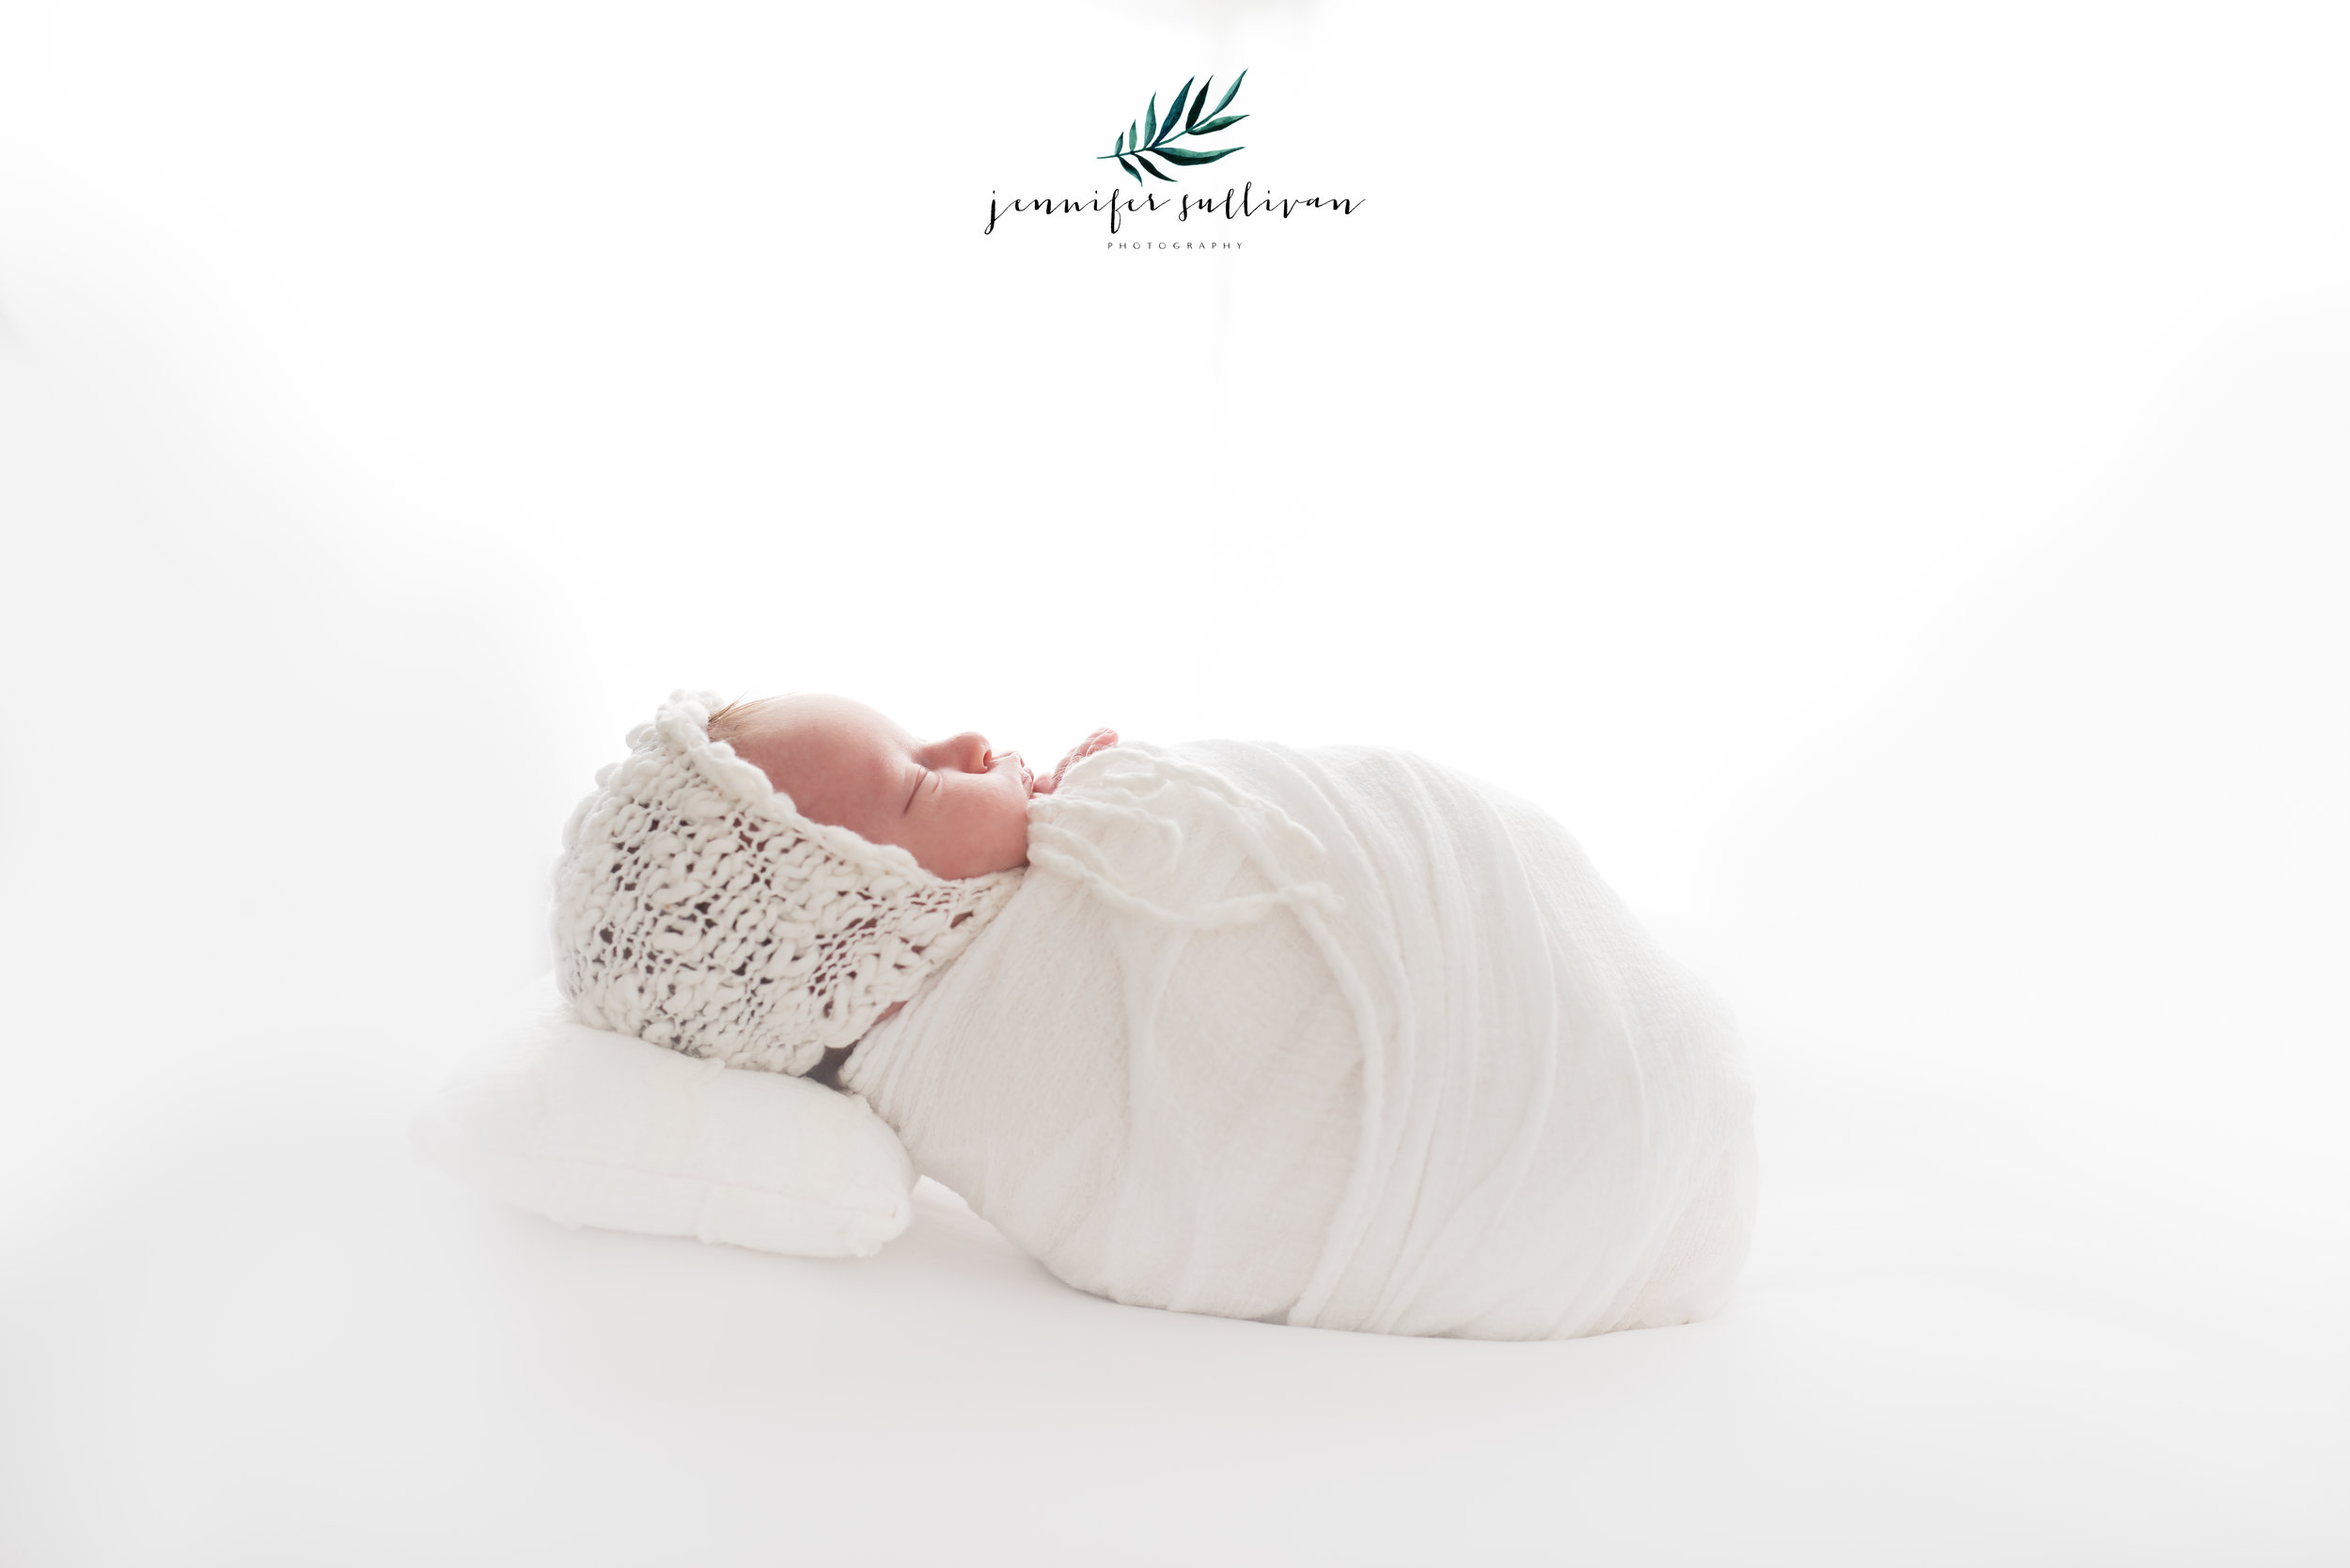 DARTMOUTH  newborn  PHOTOGRAPHER-400-6.jpg